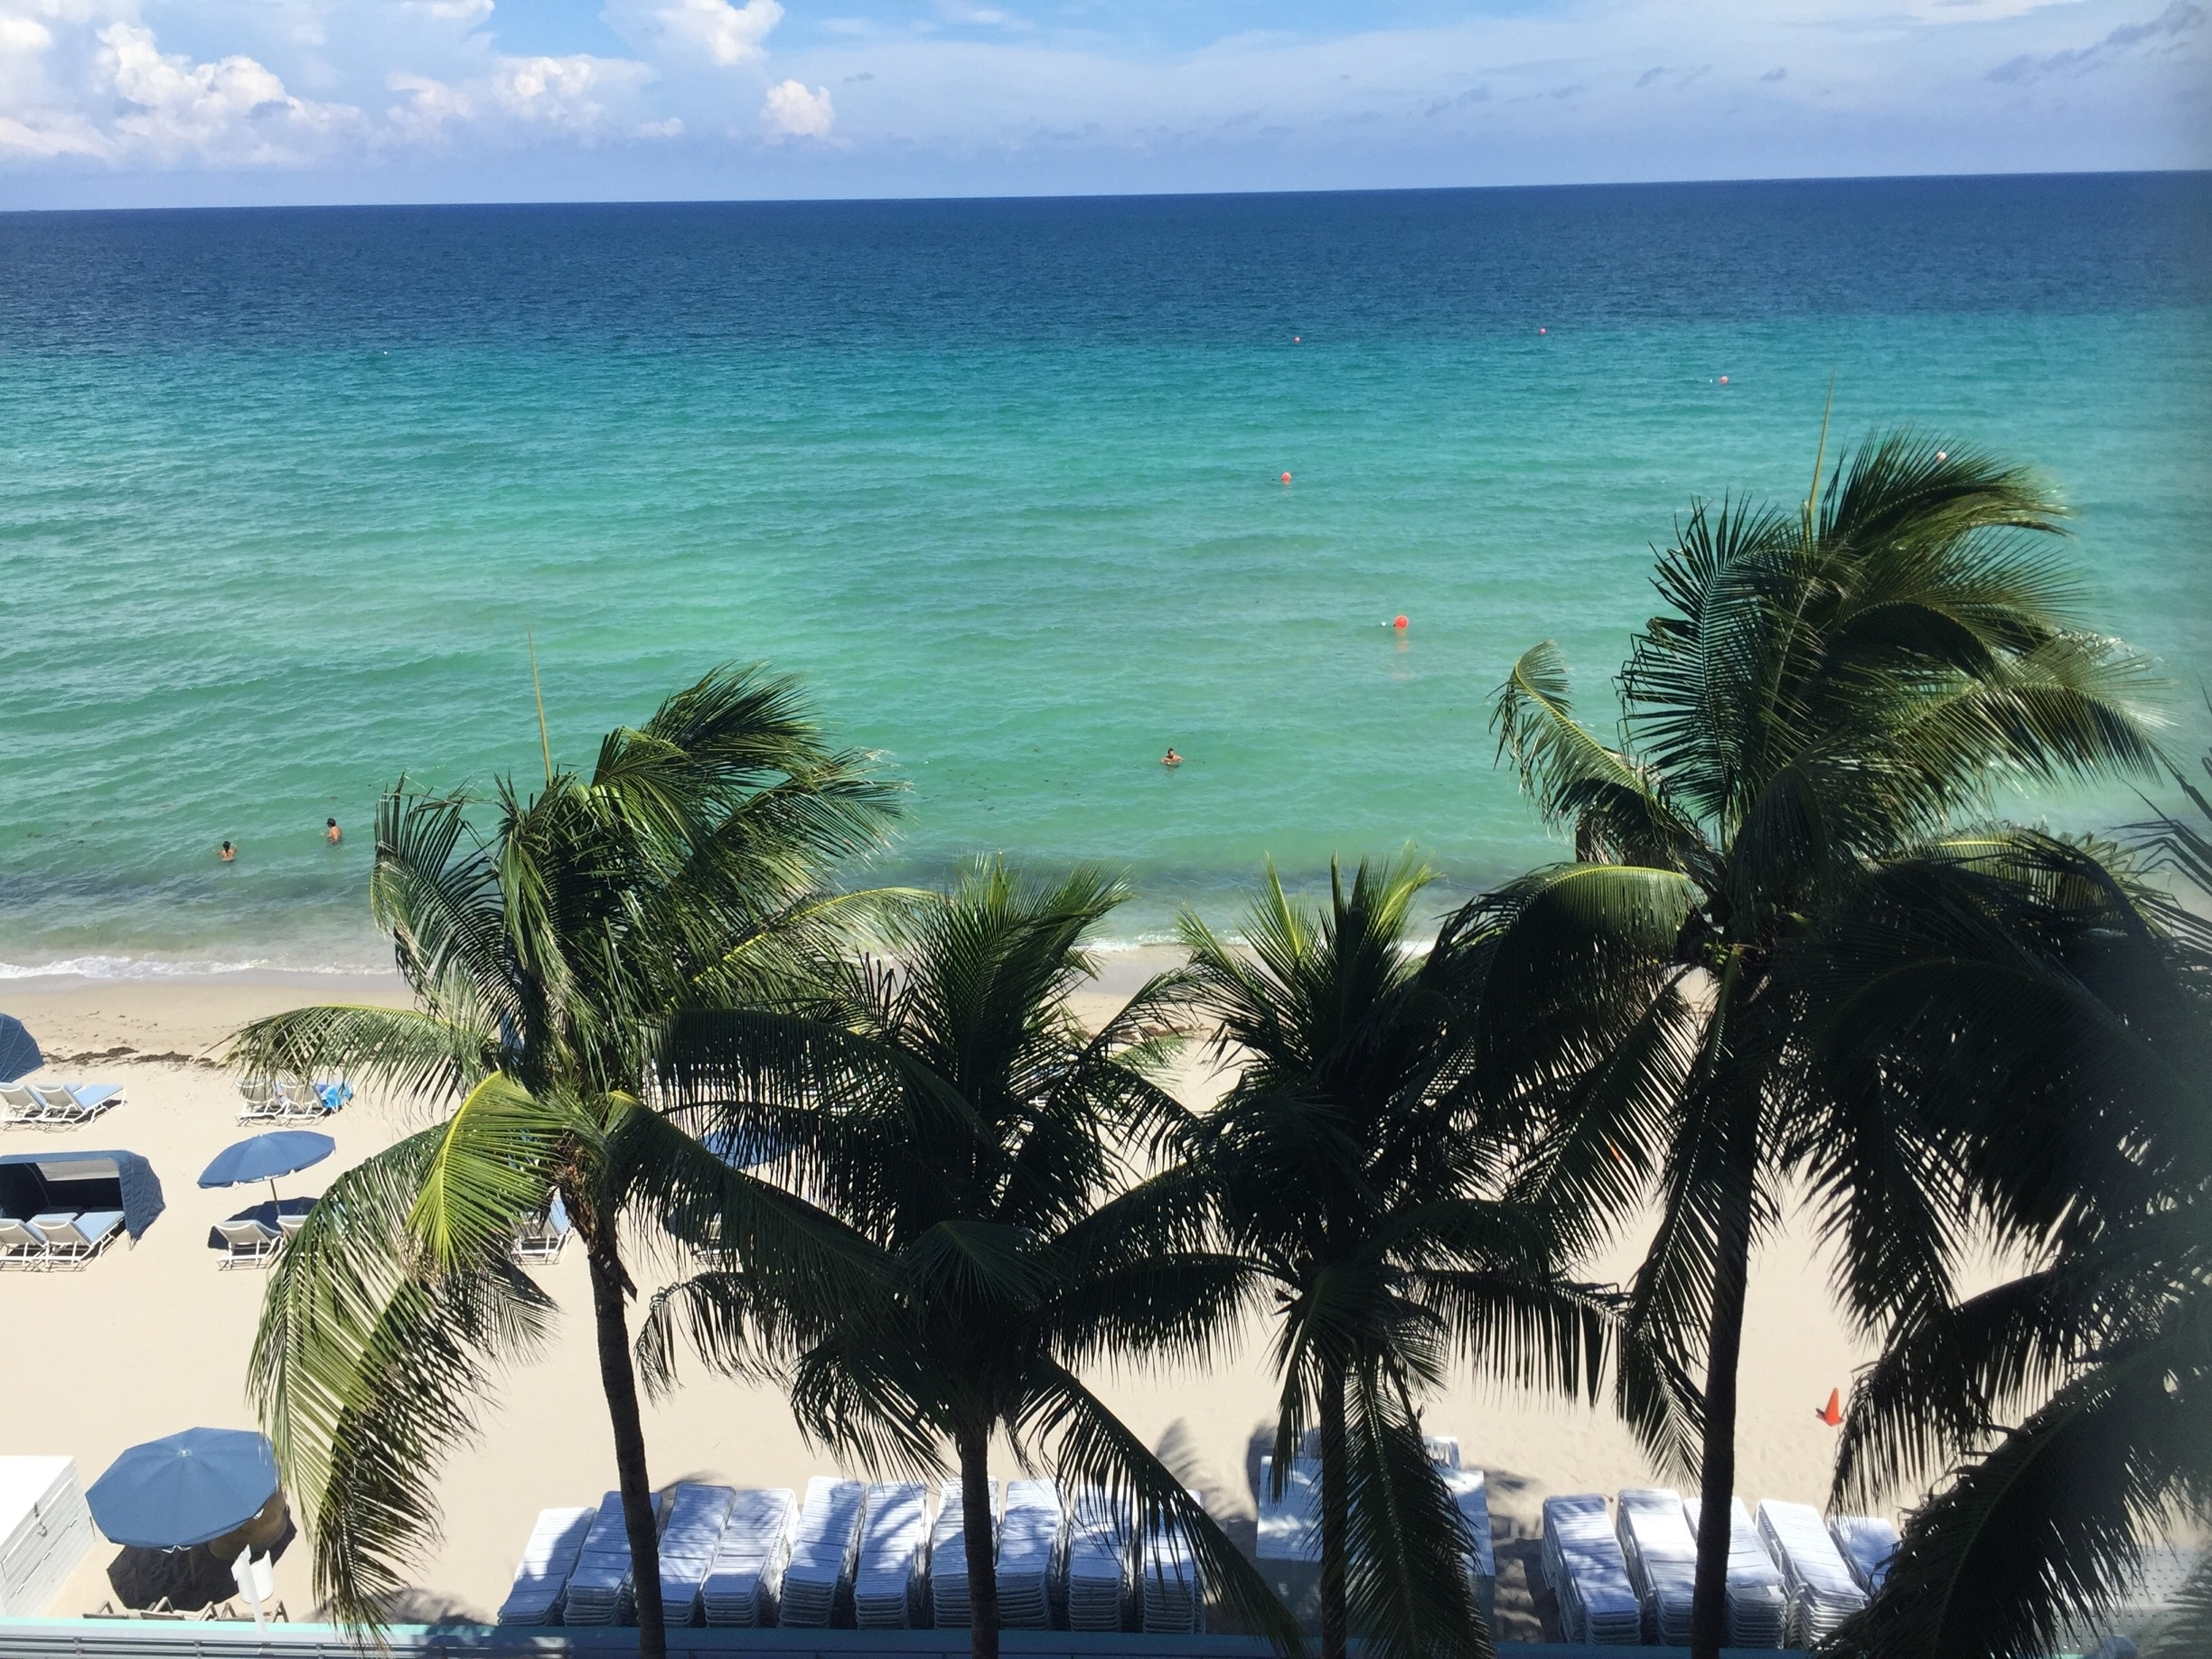 Hollywood South Central Beach, Hollywood, Florida, United States of America